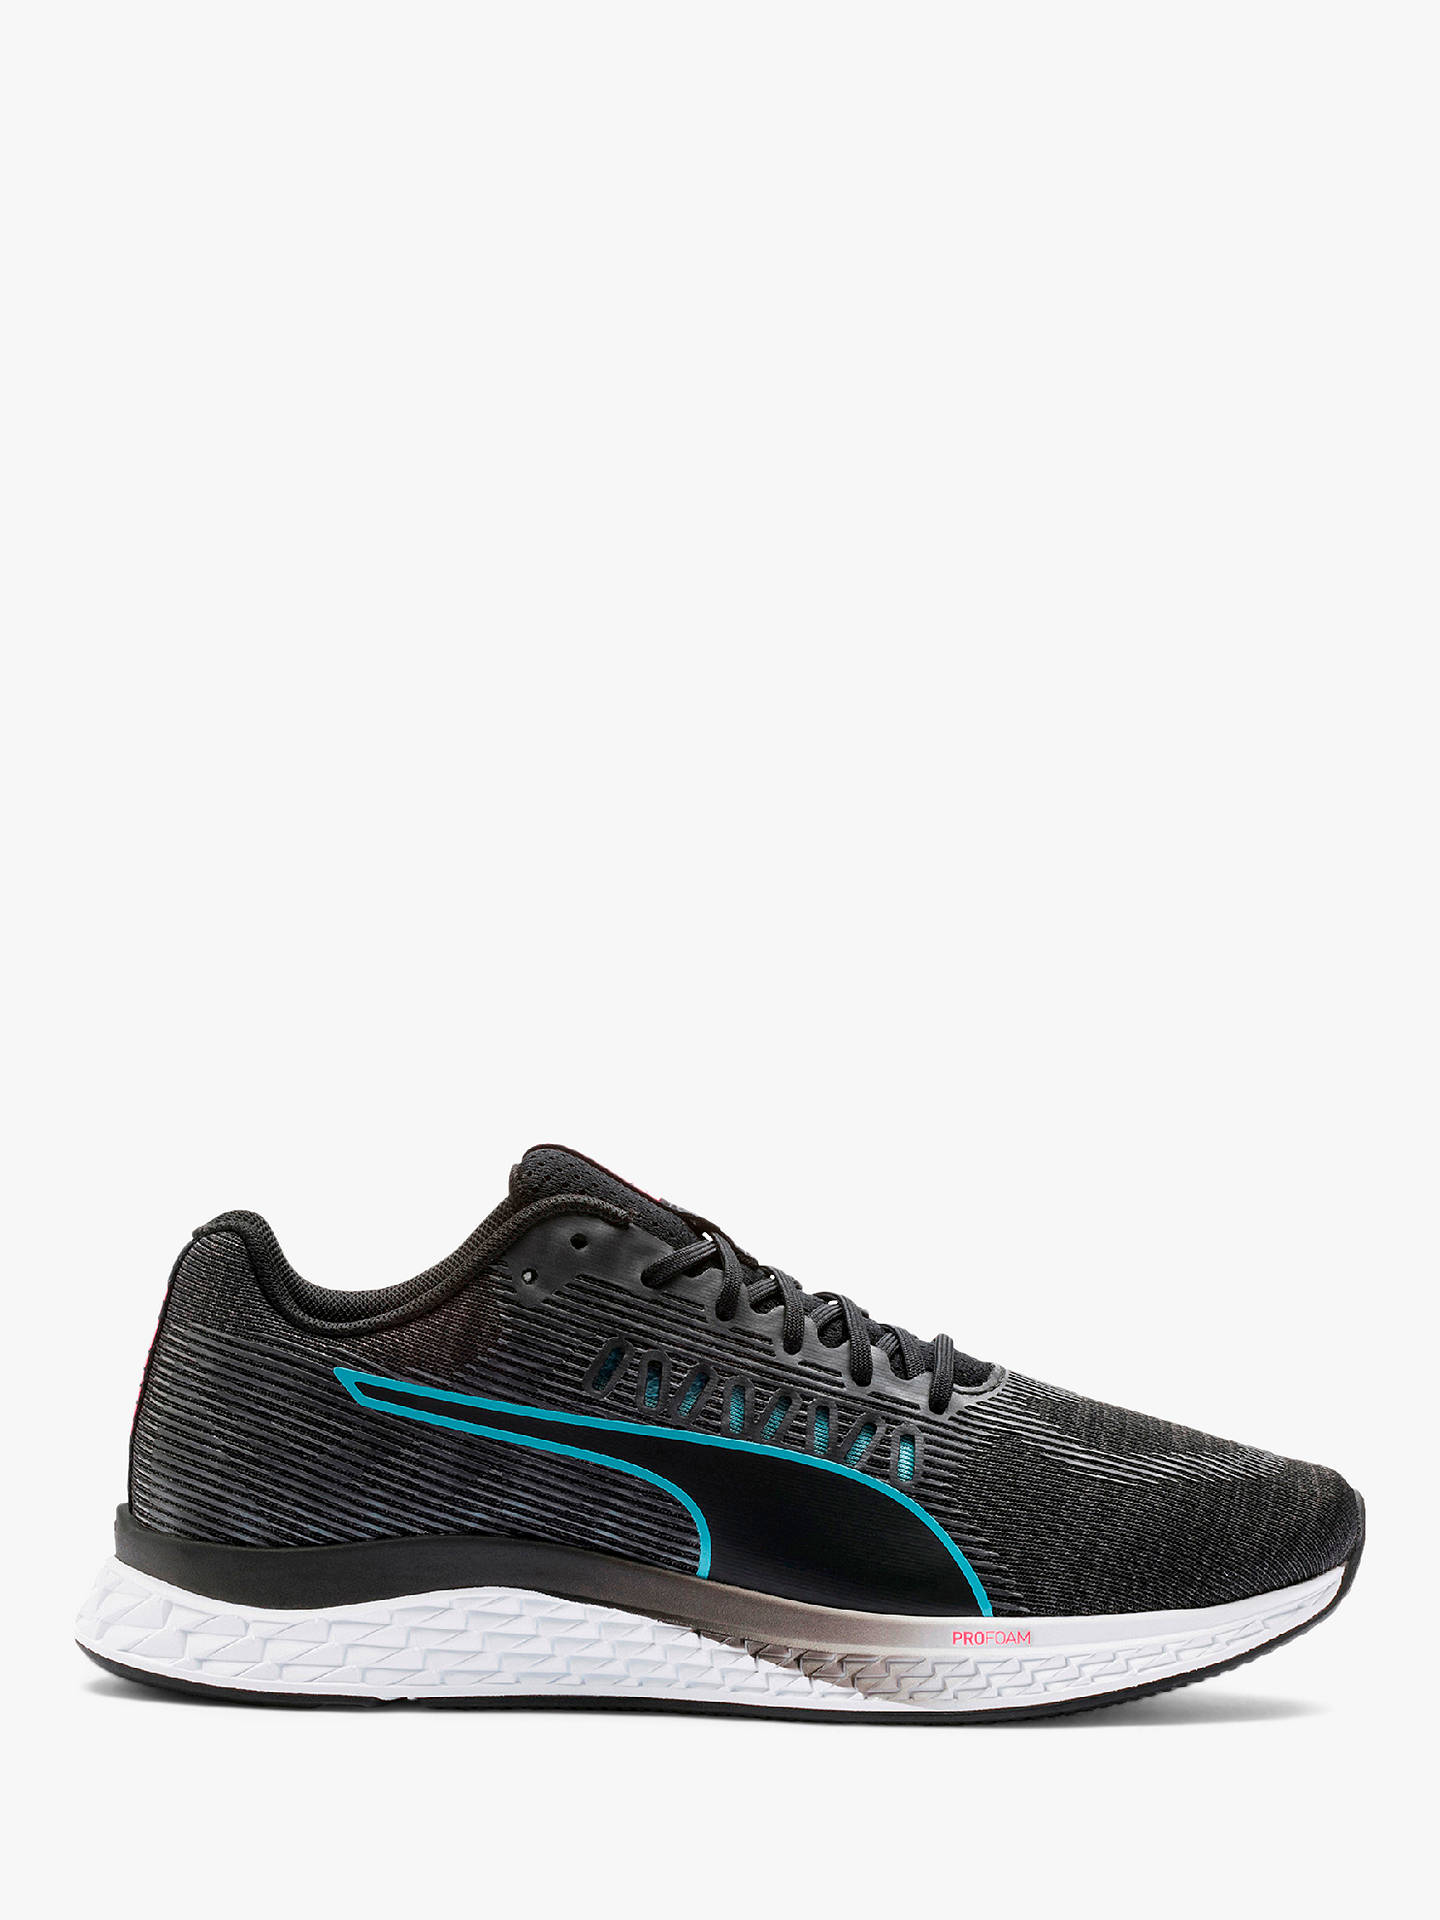 le dernier 3541c d5288 PUMA Speed Sutamina Women's Running Shoes, PUMA Black/Fair Aqua/PUMA White